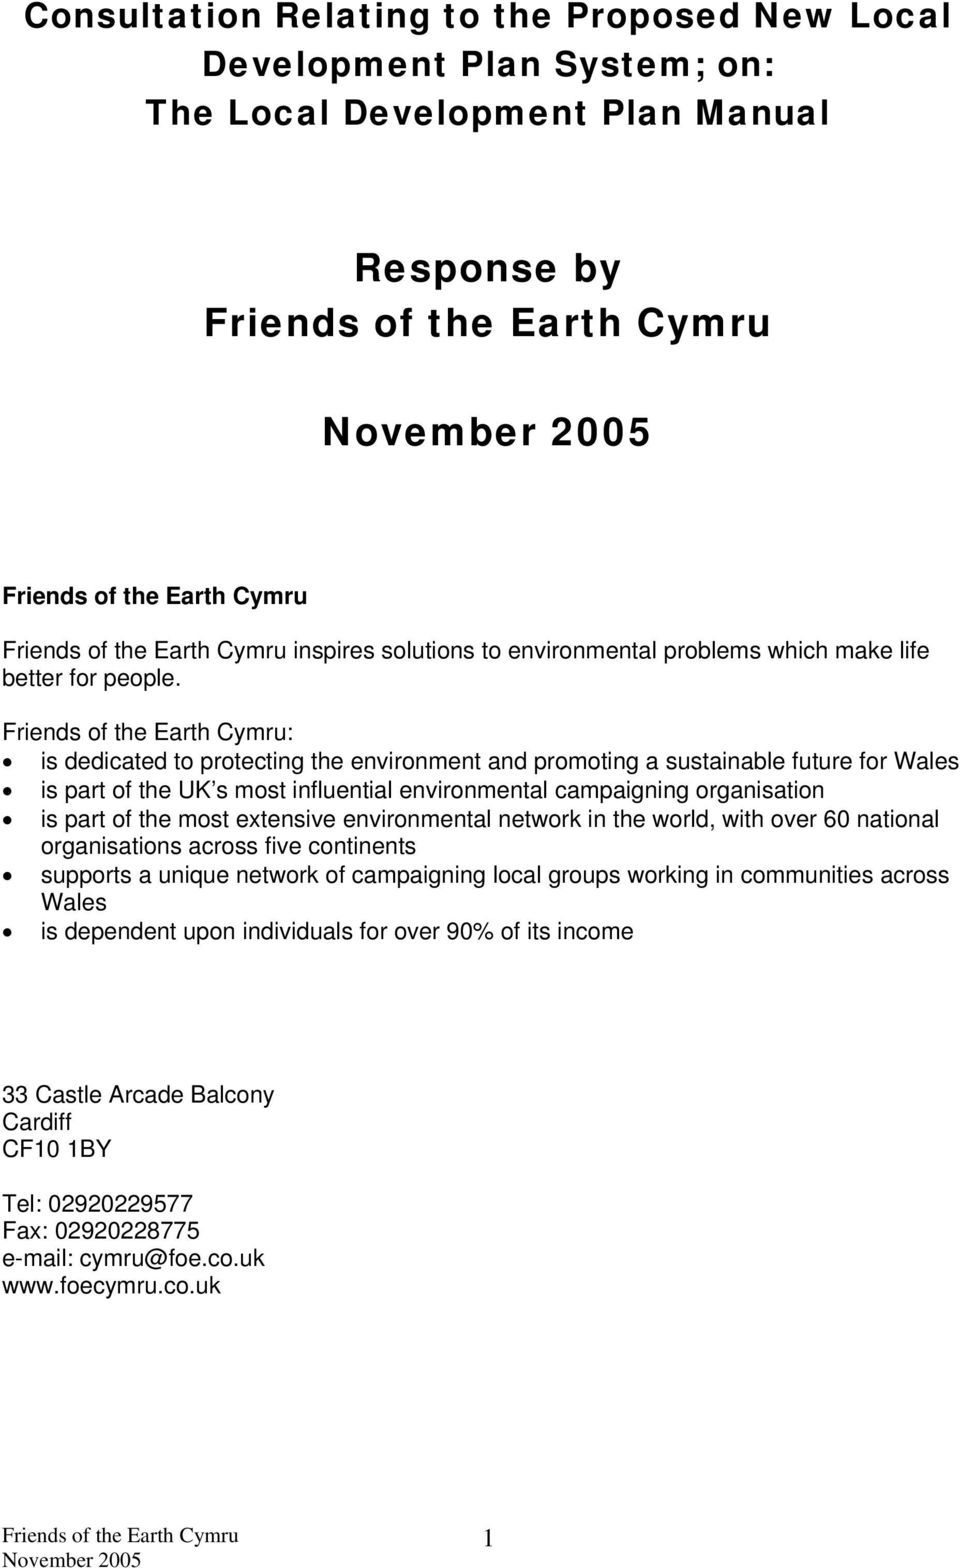 : is dedicated to protecting the environment and promoting a sustainable future for Wales is part of the UK s most influential environmental campaigning organisation is part of the most